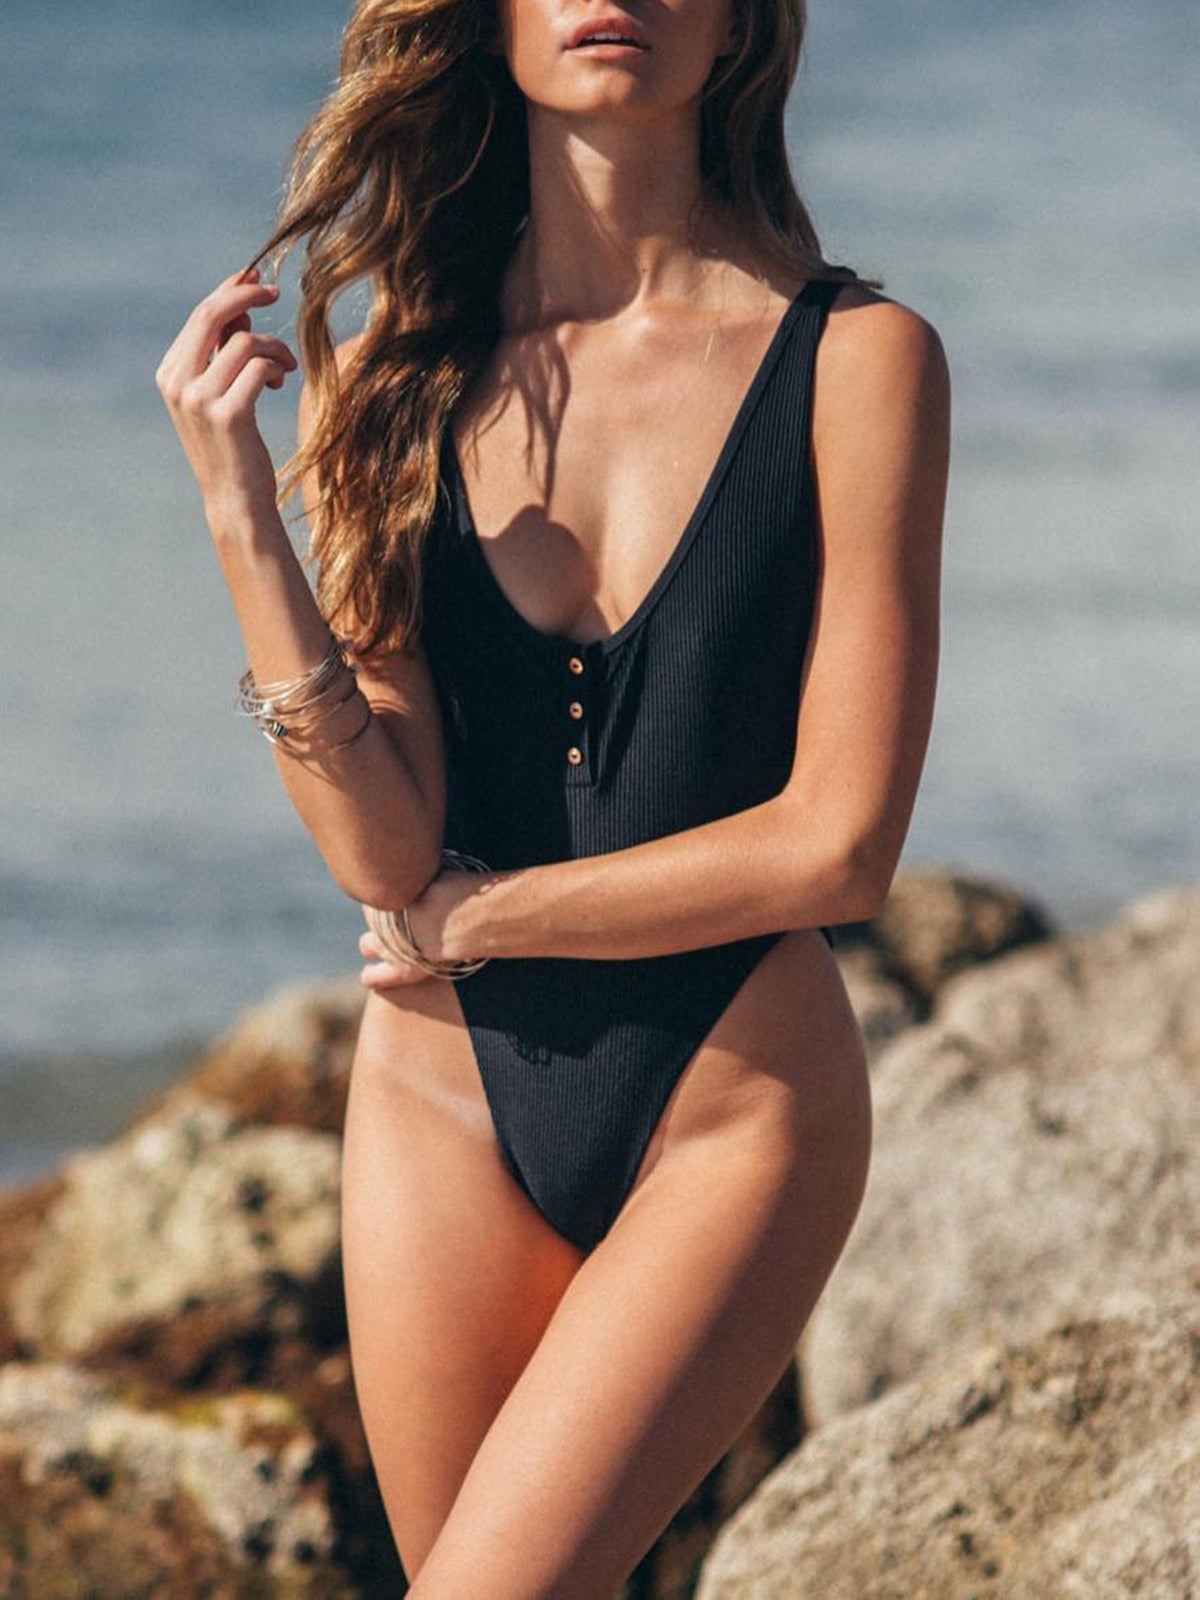 Ribbed Button Up High Rise Cut One Piece Swimsuit - worthtryit.com